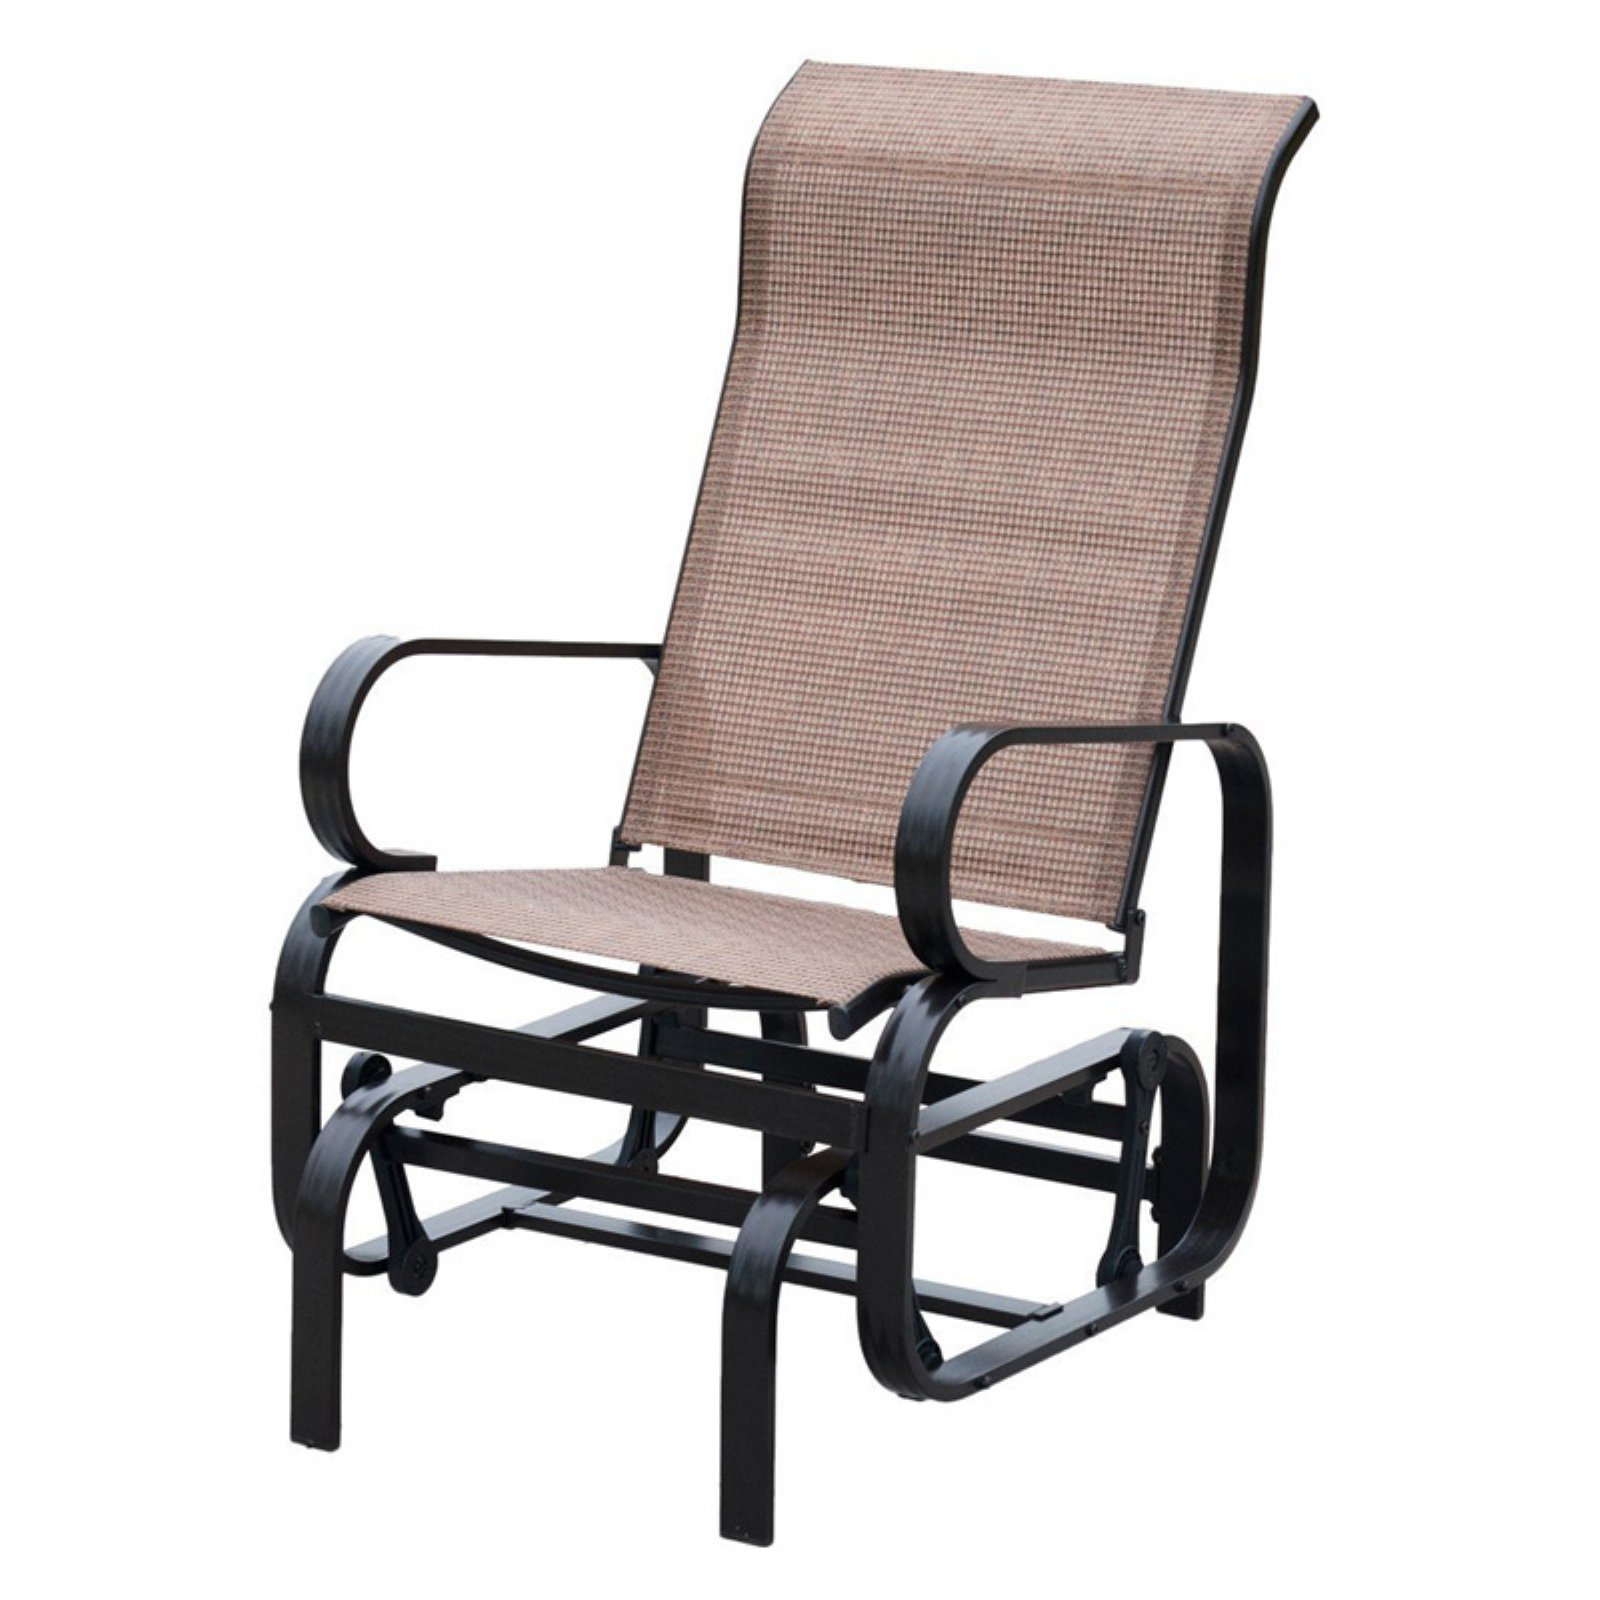 Patiopost Sling Glider Outdoor Patio Chair Textilene Mesh Fabric Tan